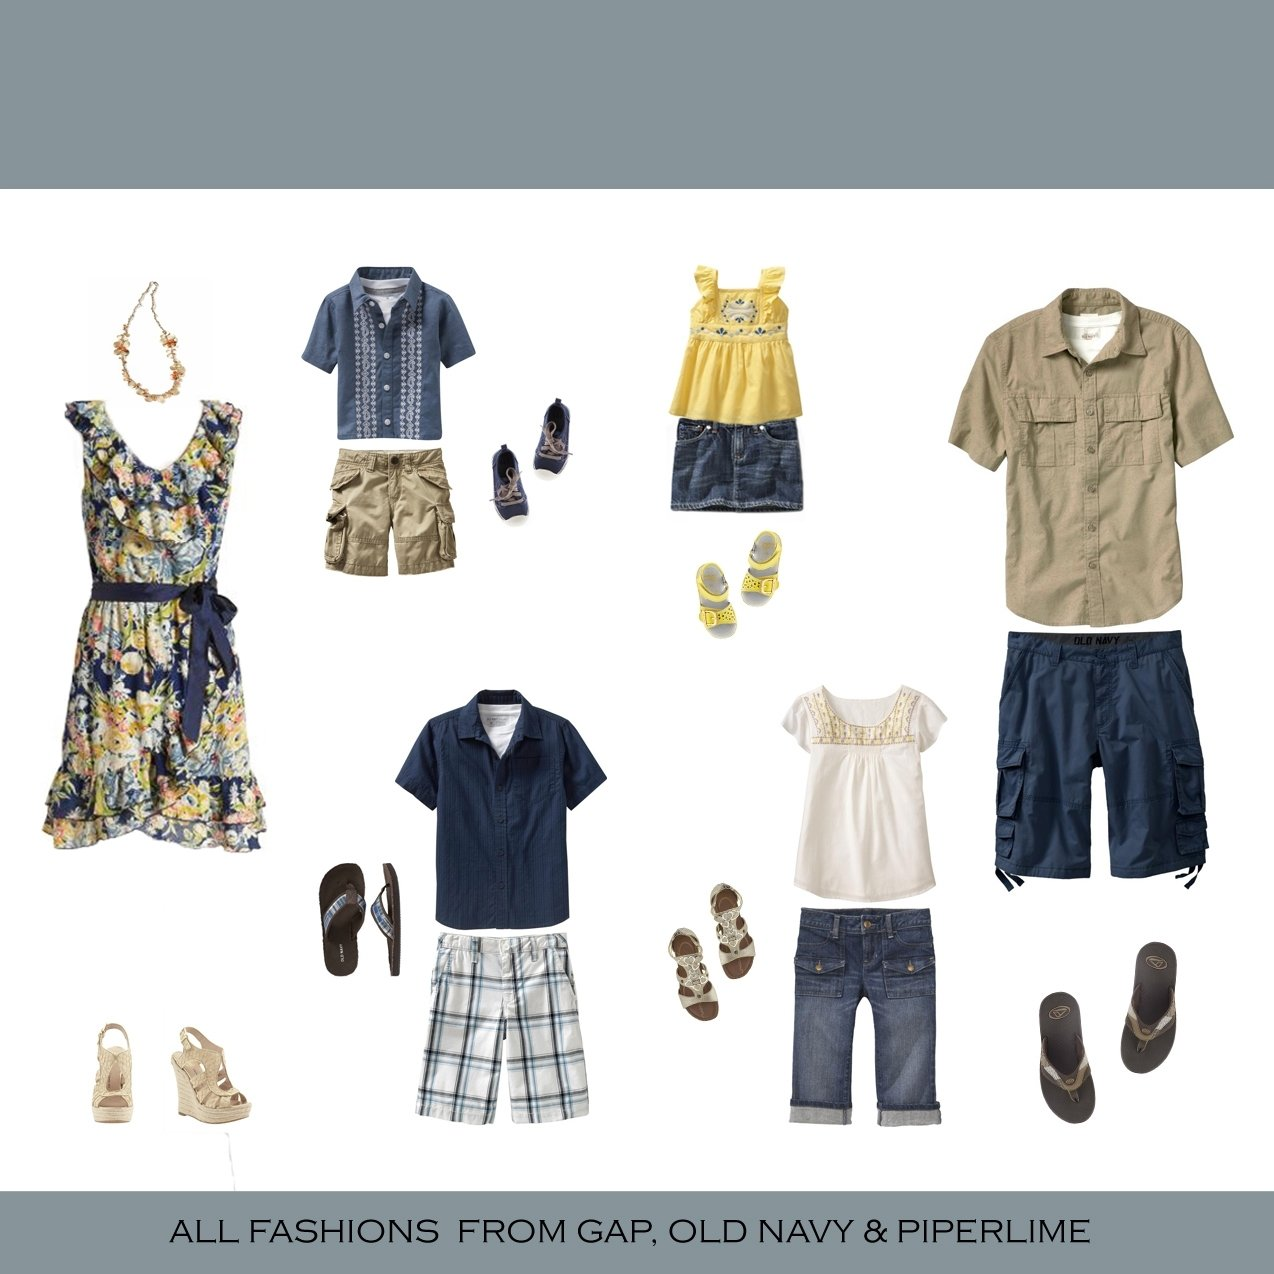 10 Cute Summer Family Photo Clothing Ideas what to wear for a photoshoot katerina fort photography and design 2020